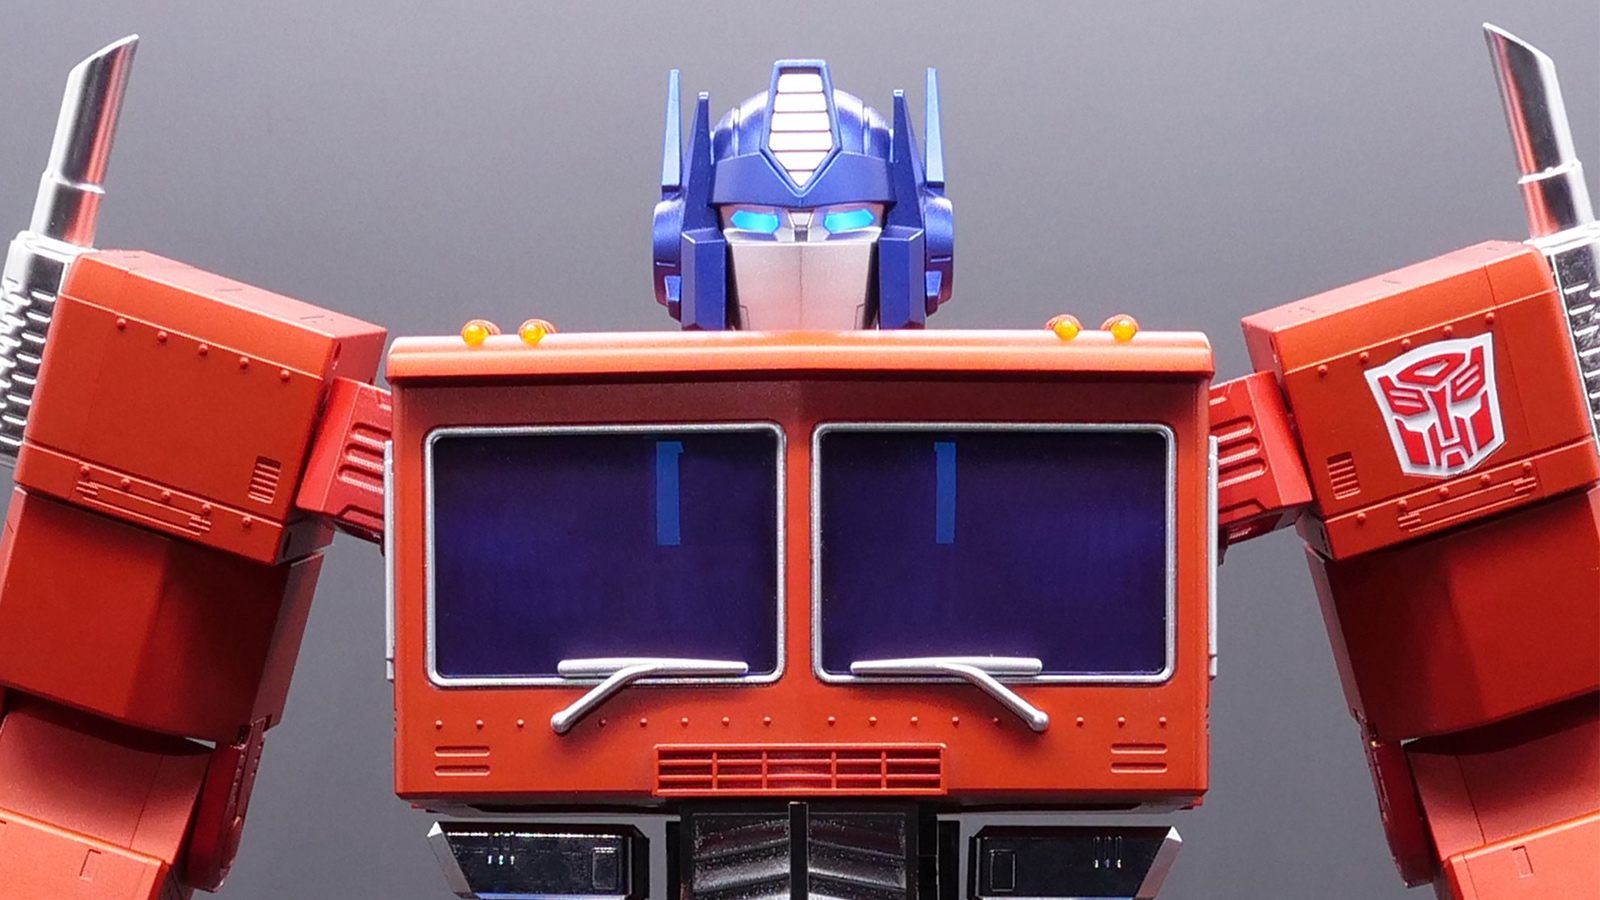 Transformers Optimus Prime Auto-Converting Programmable Robot Collector's Edition